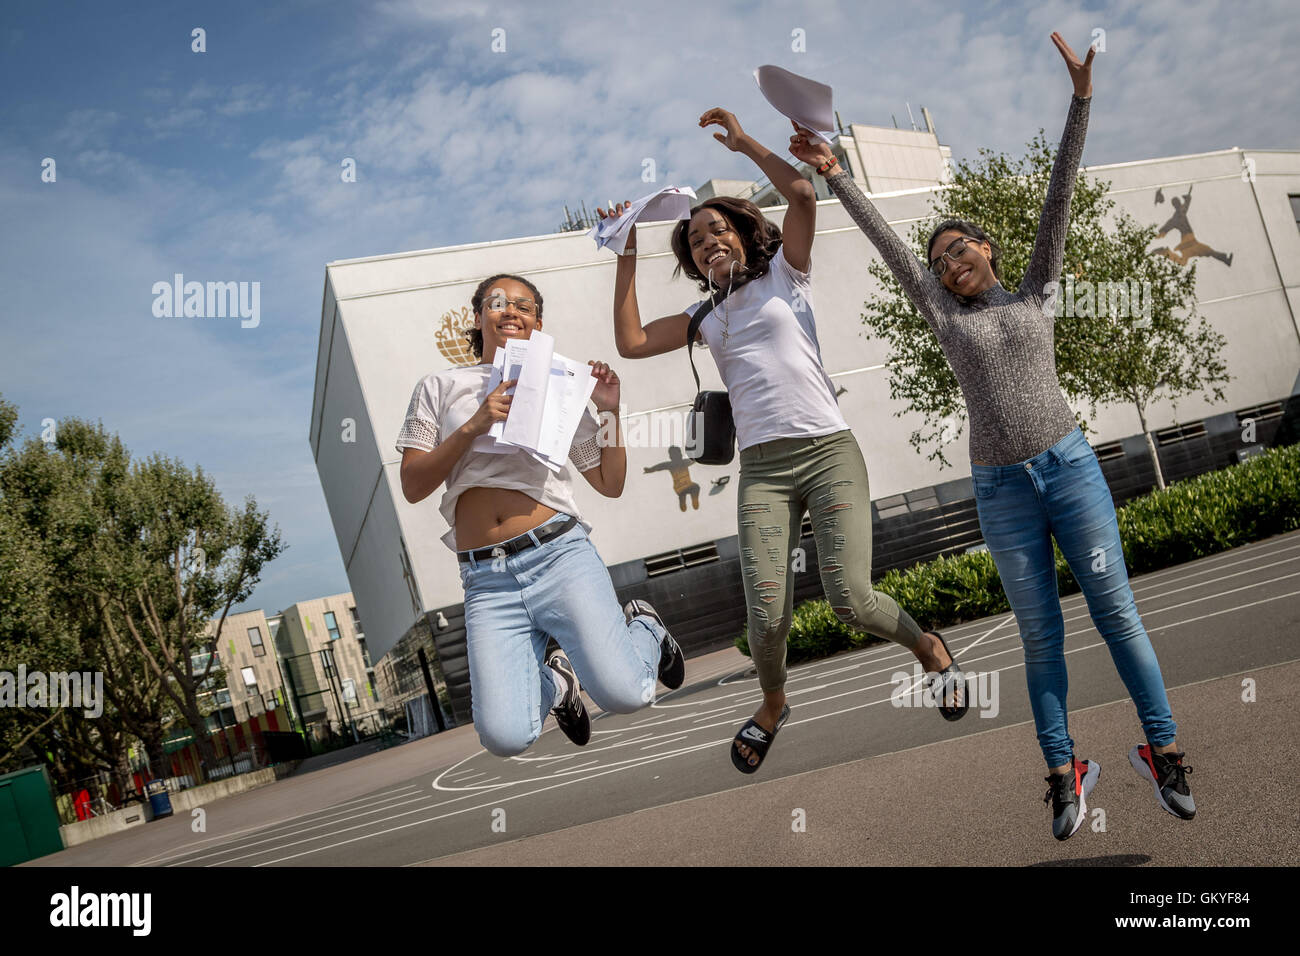 London, UK. 25th August, 2016. Pupils jump for joy after collecting their GCSE exam results at Ark Globe Academy - Stock Image